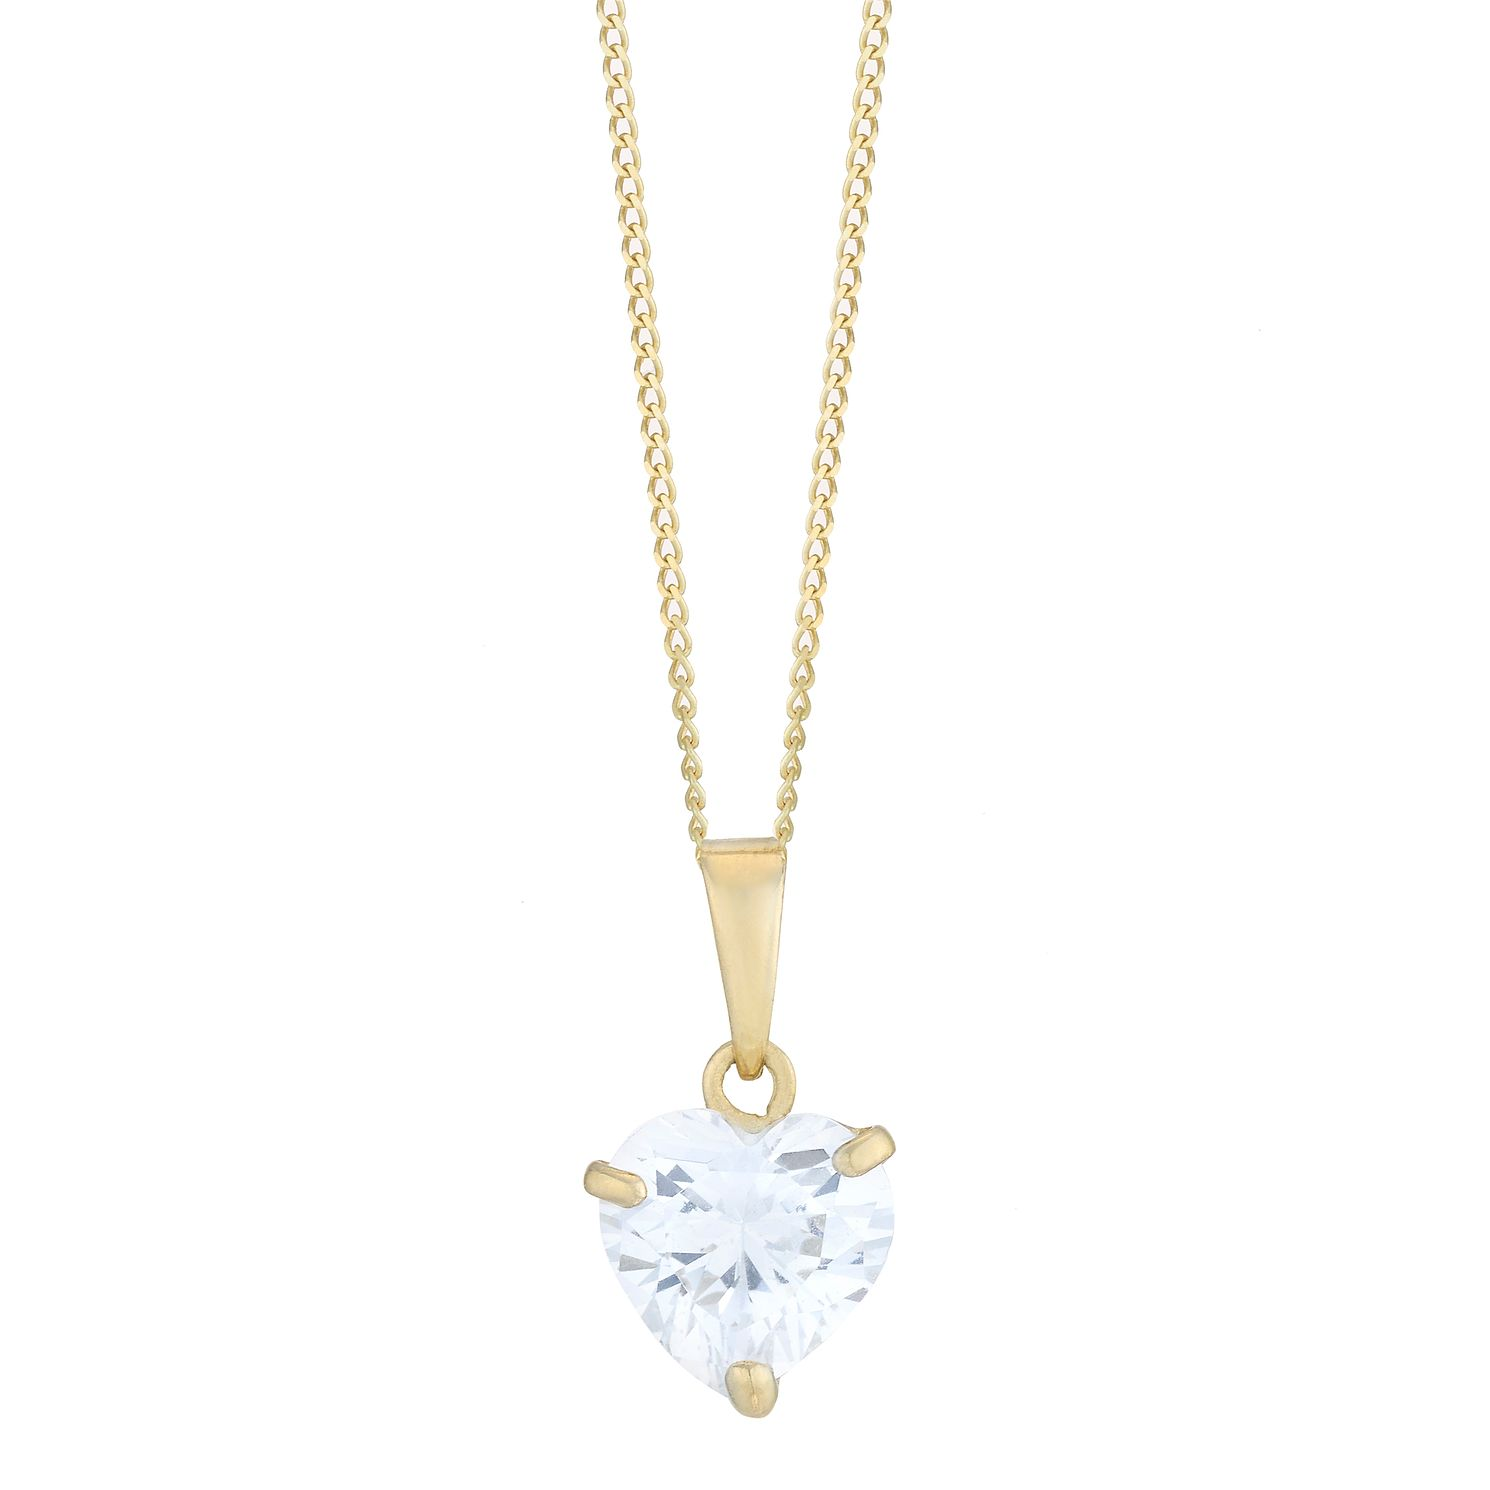 9ct Yellow Gold Heart Shaped Cubic Zirconia Pendant - Product number 8108471